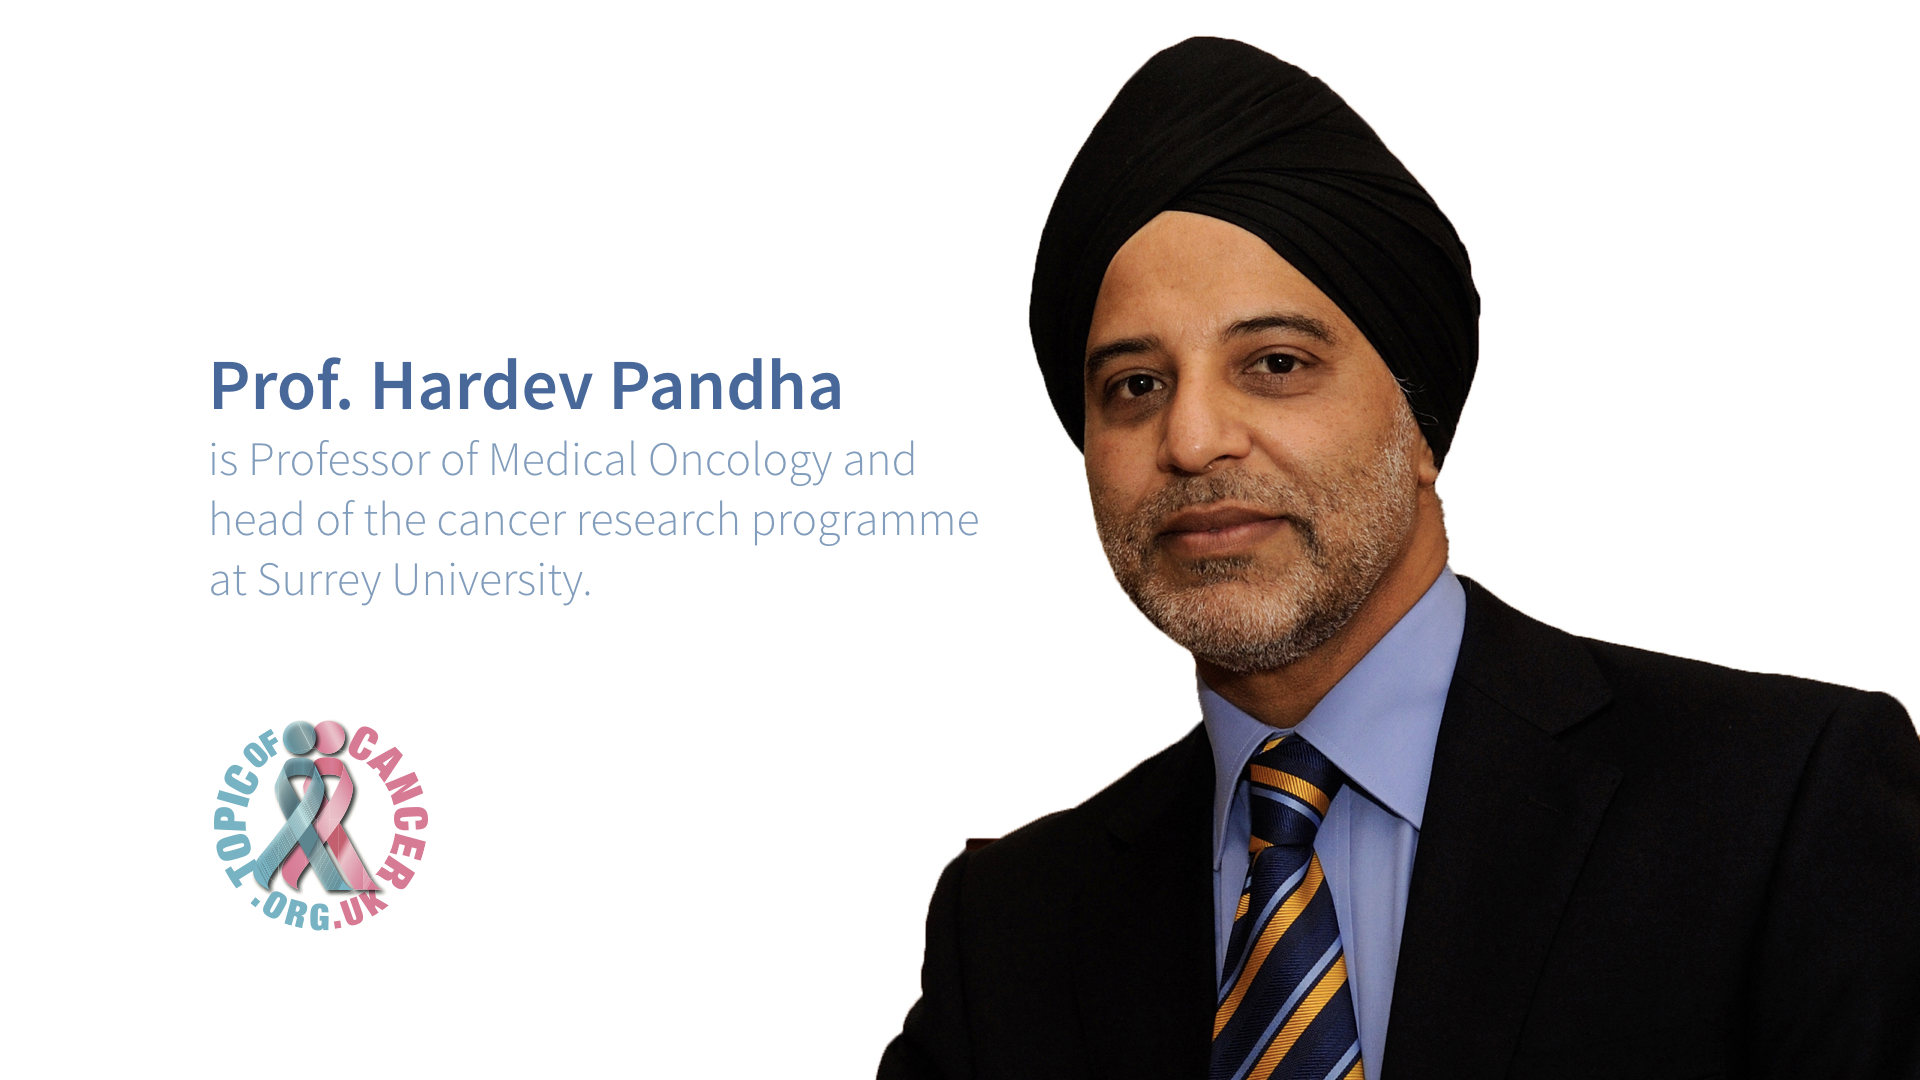 Watch our latest video interview with Prof. Hardev Pandha